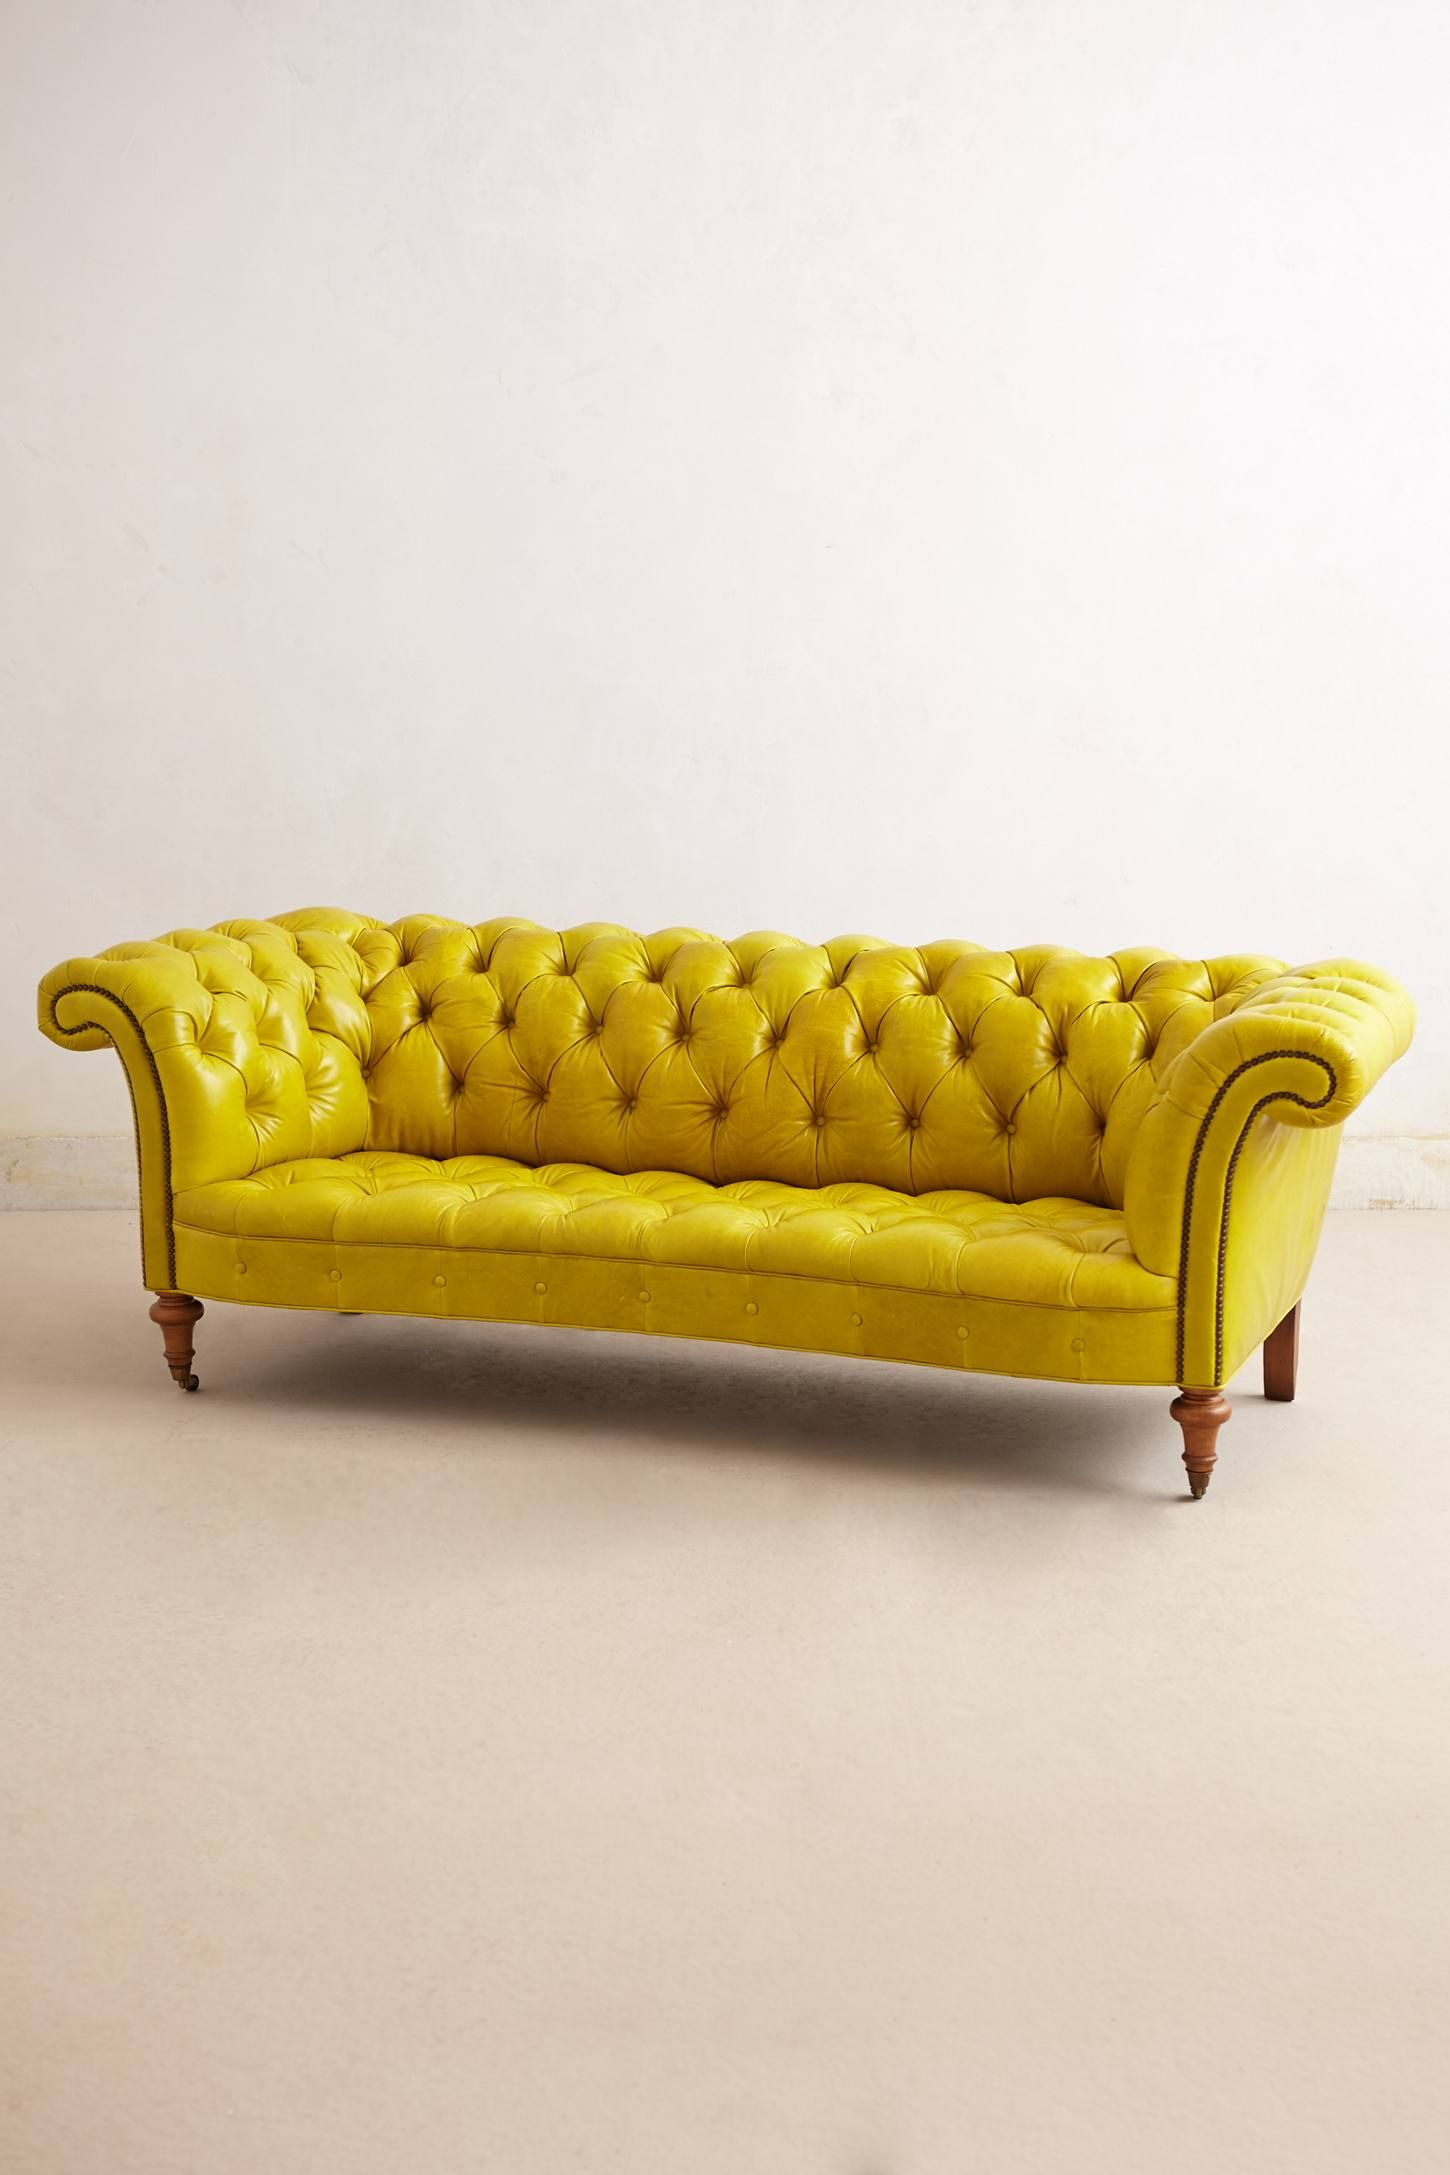 Chesterfield sofa modern grau  Interesting Types of Chesterfield Sofas You Can Choose from | sofa ...